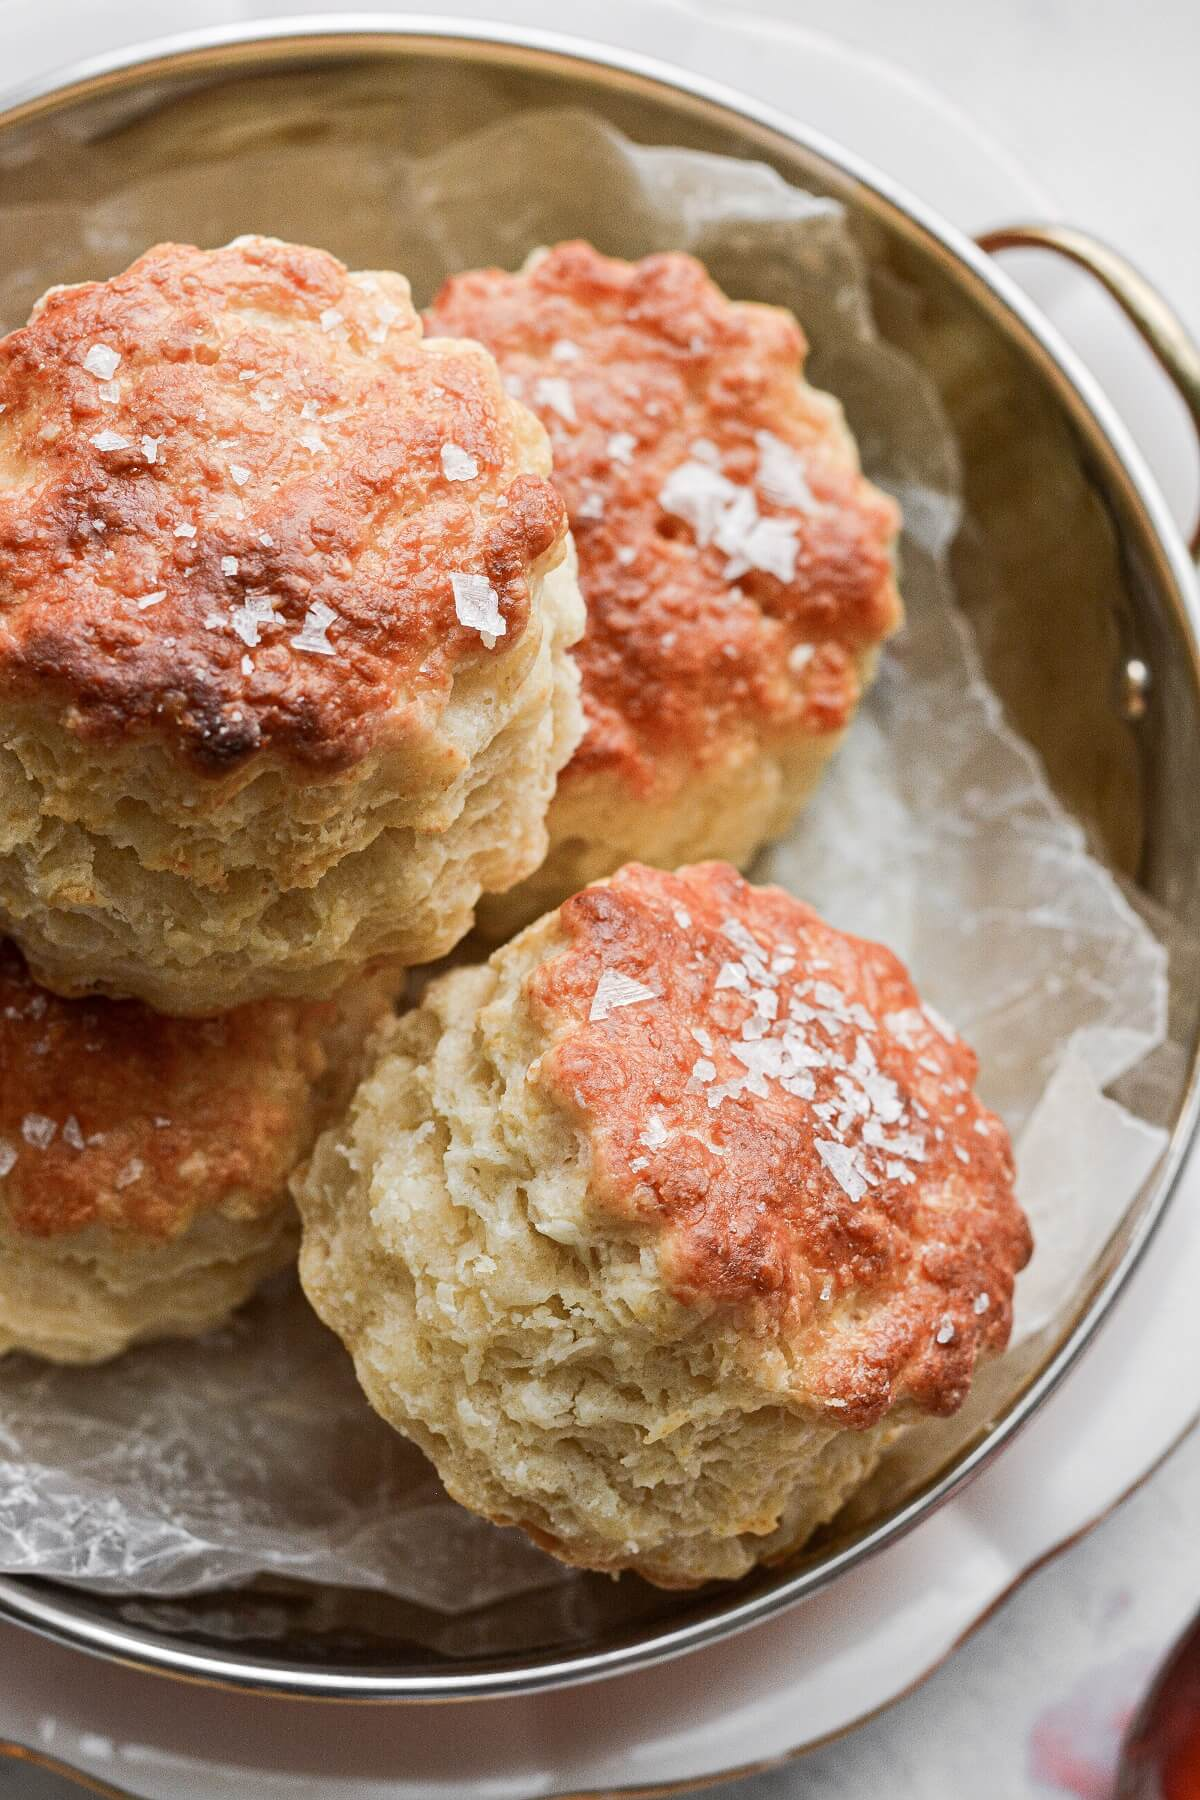 A bowl filled with baking powder biscuits.